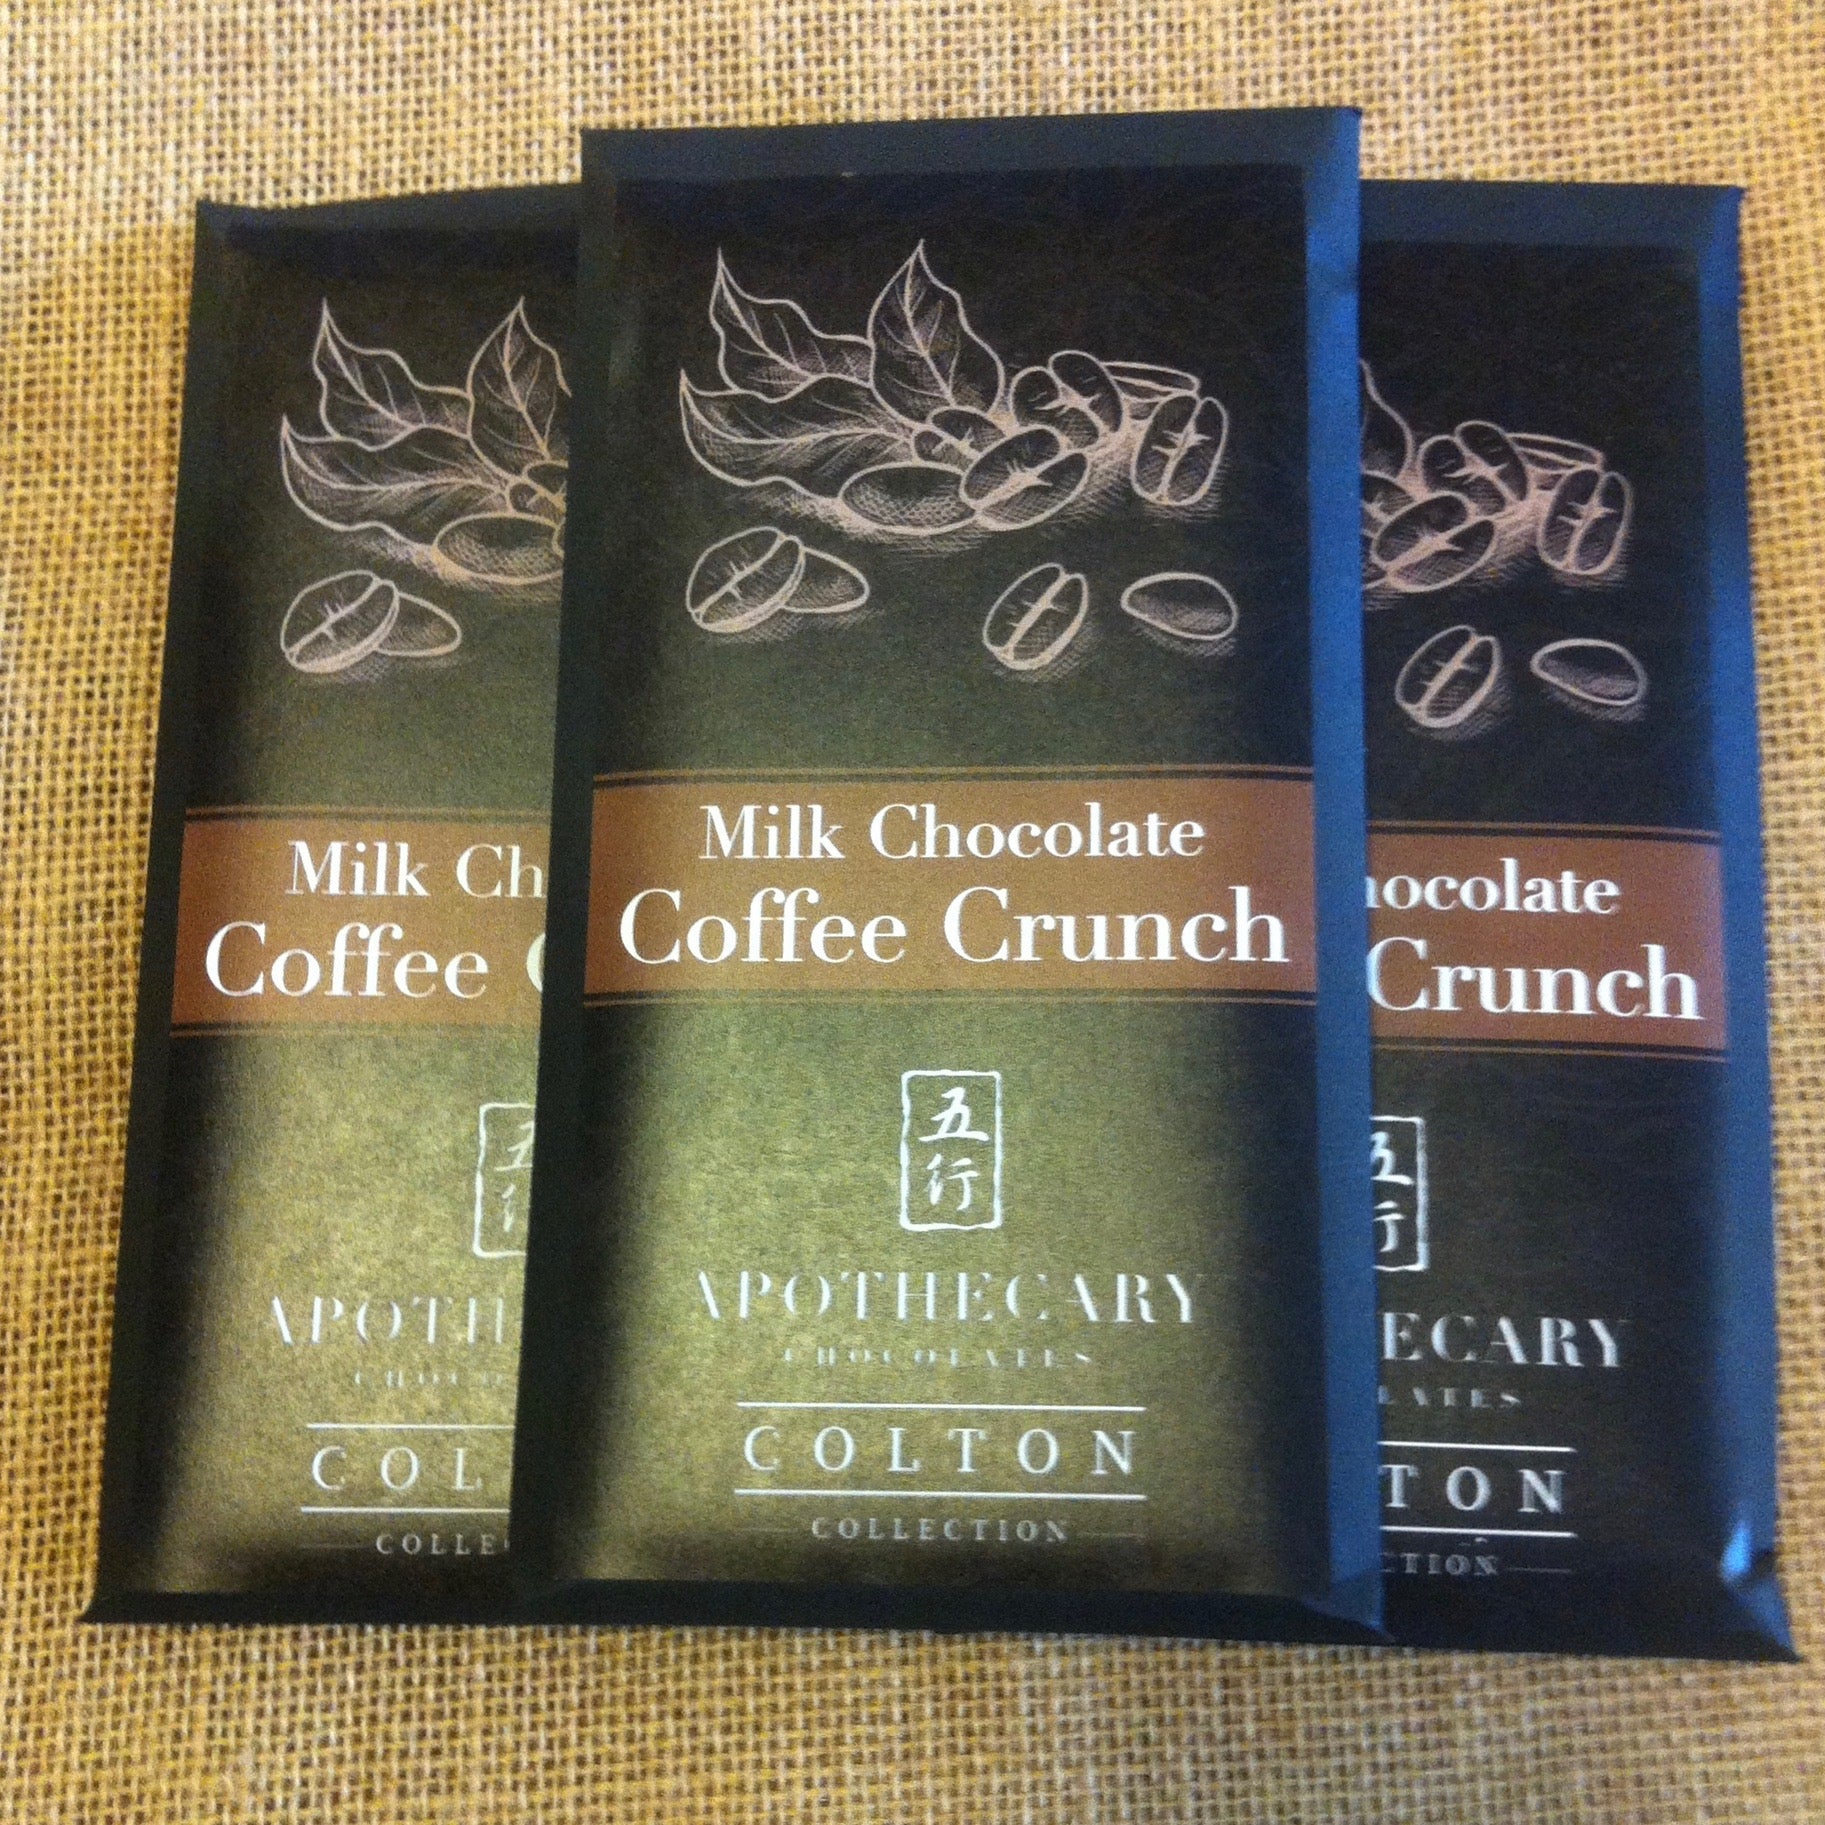 Milk Chocolate Coffee Crunch